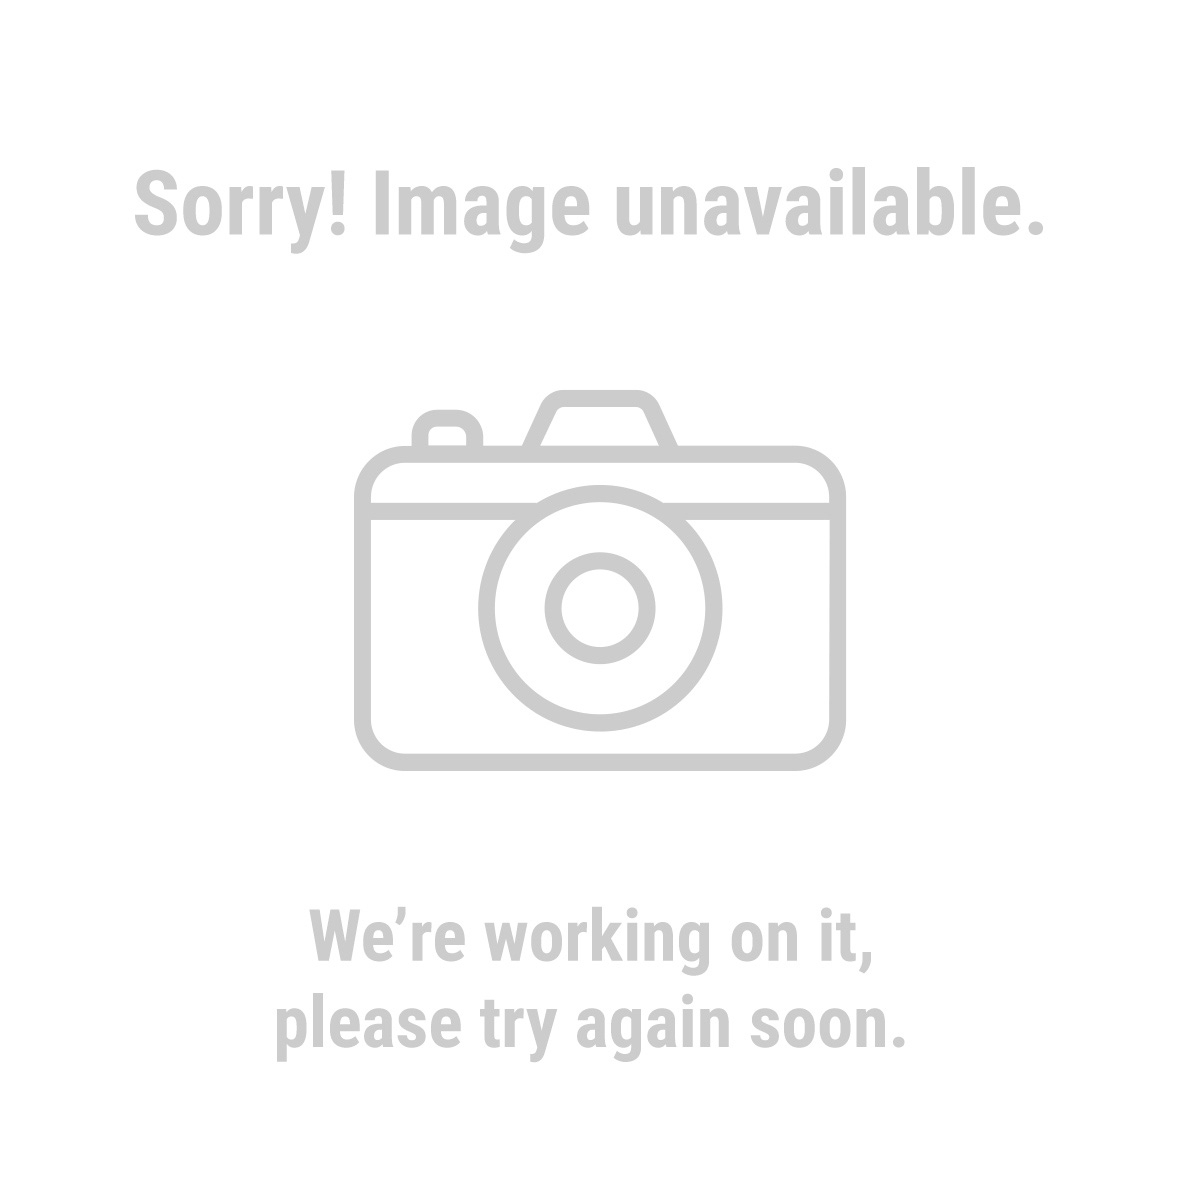 97504 Pack of 2 Ceramic Block Magnets